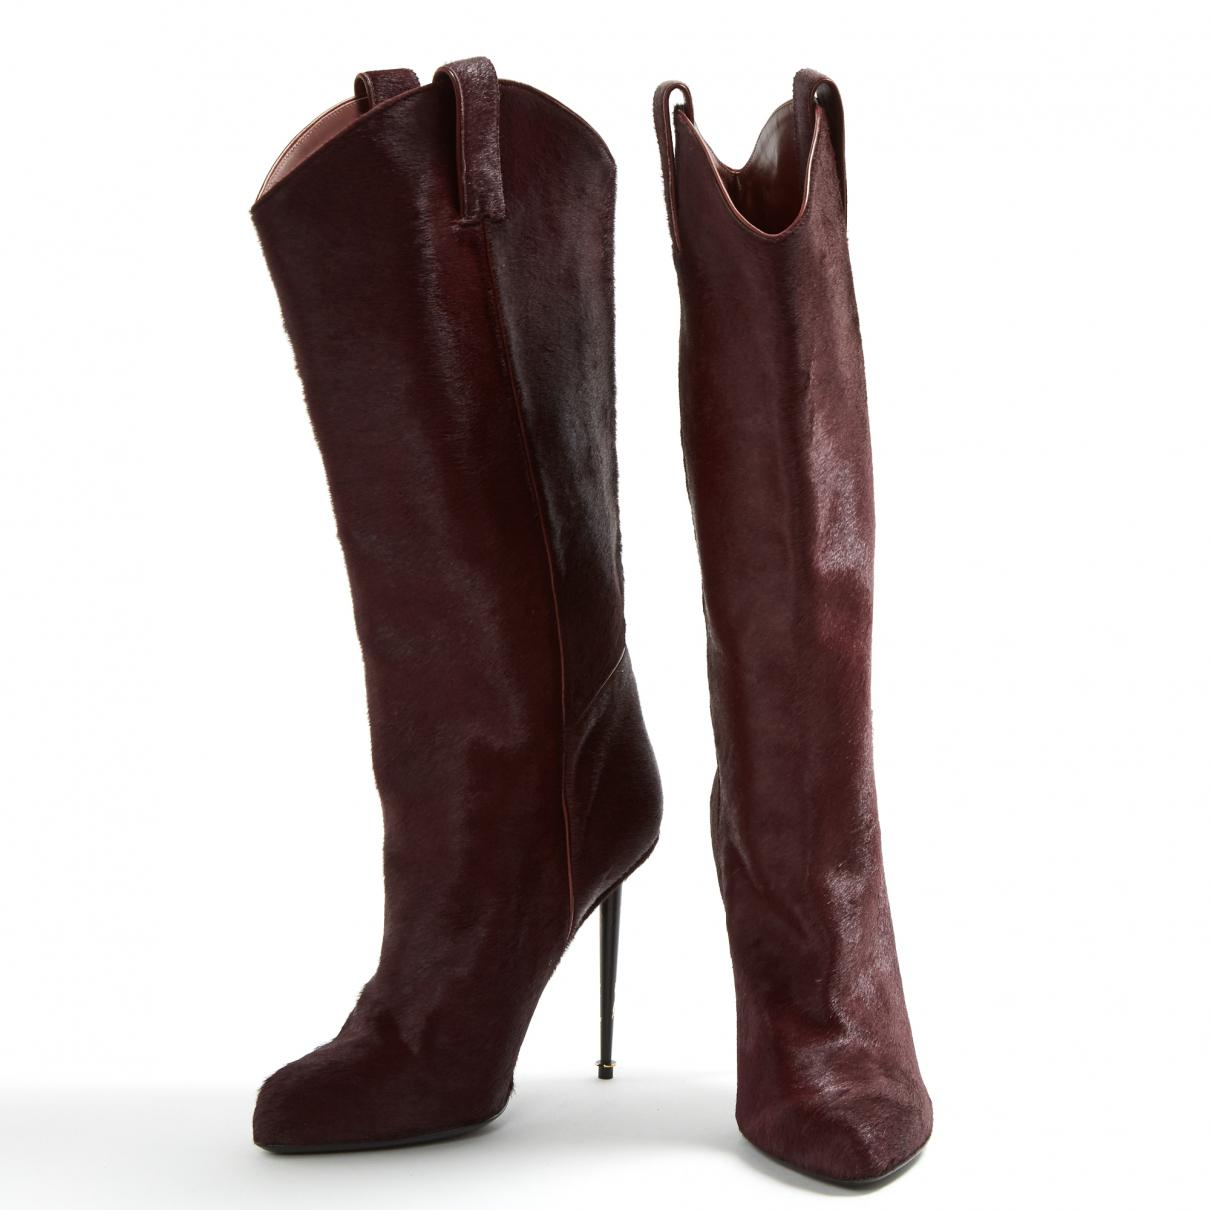 Tom Ford Pony-style Calfskin Boots BVXpg1